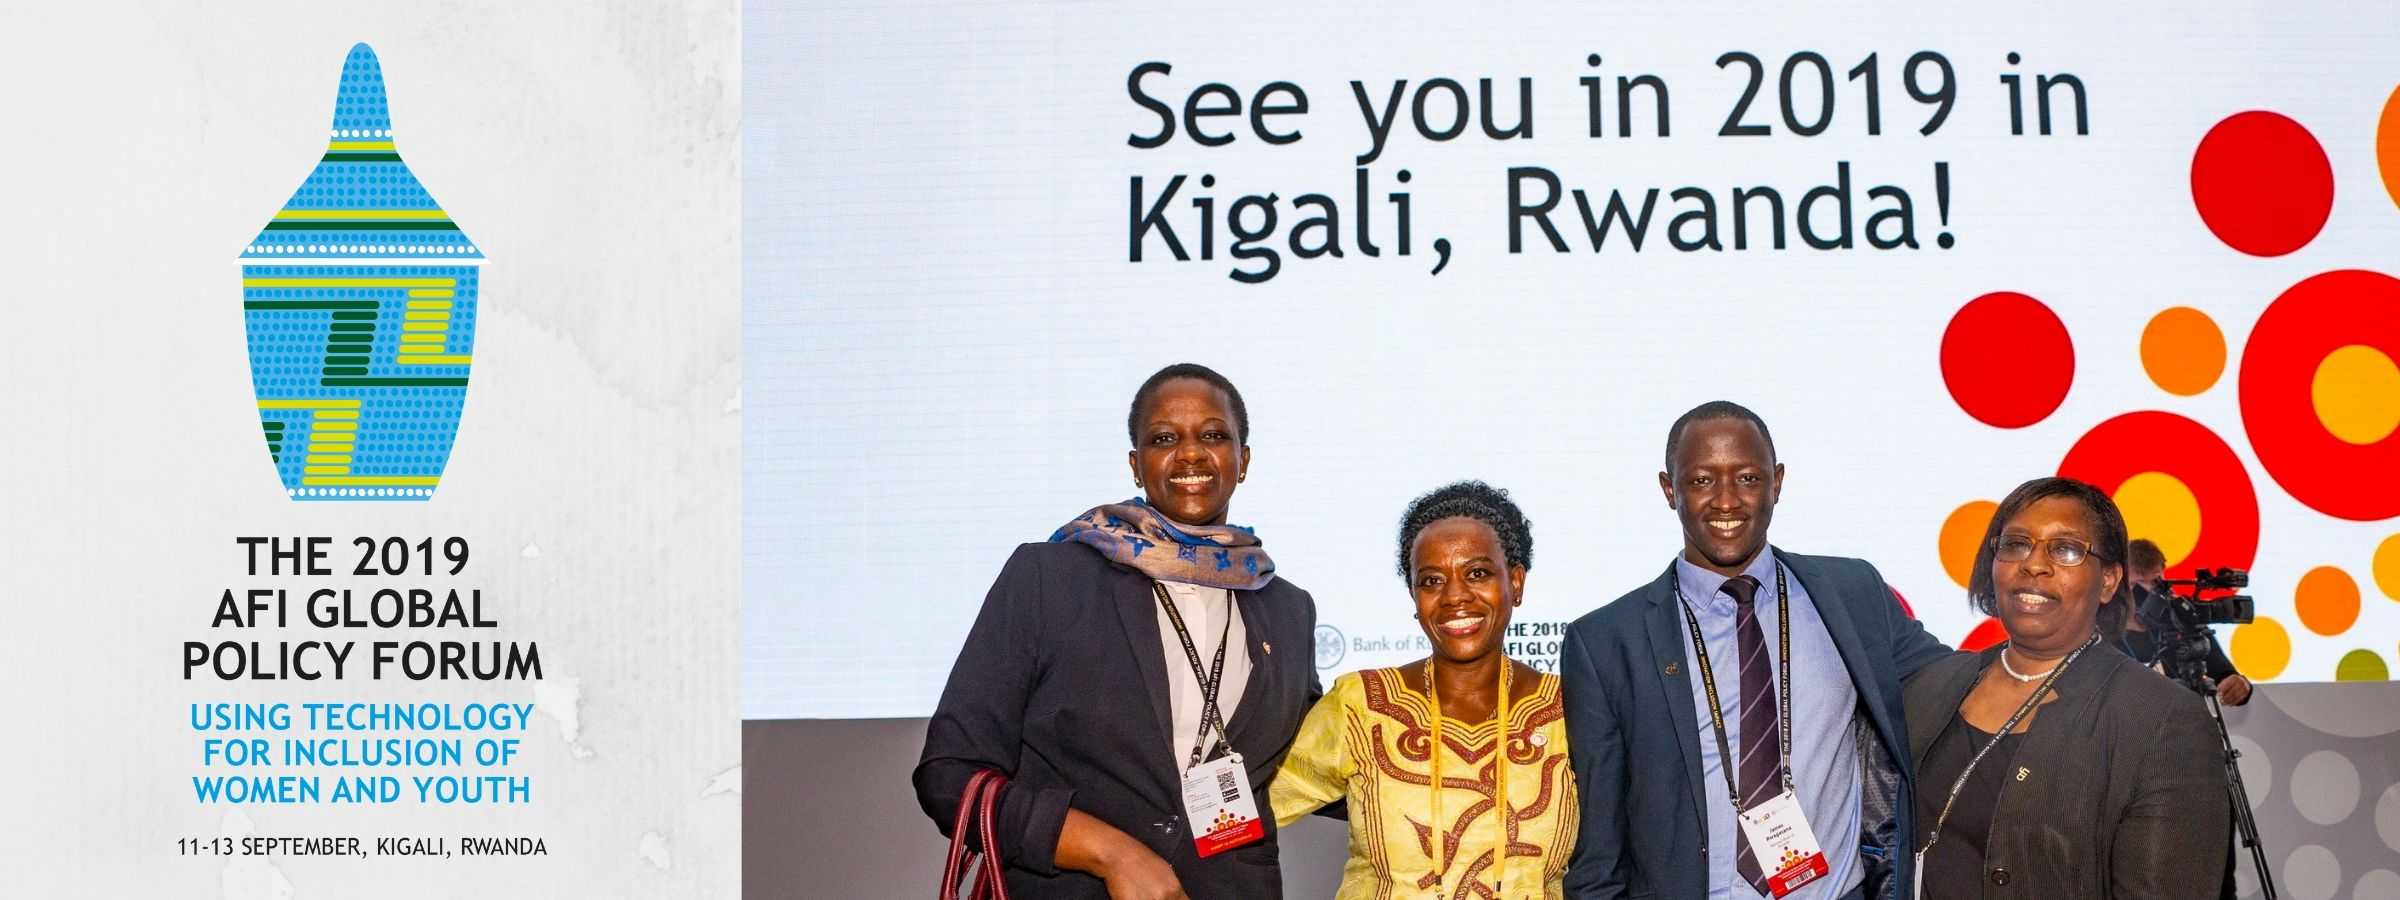 See you in Kigali for the 2019 AFI GPF!